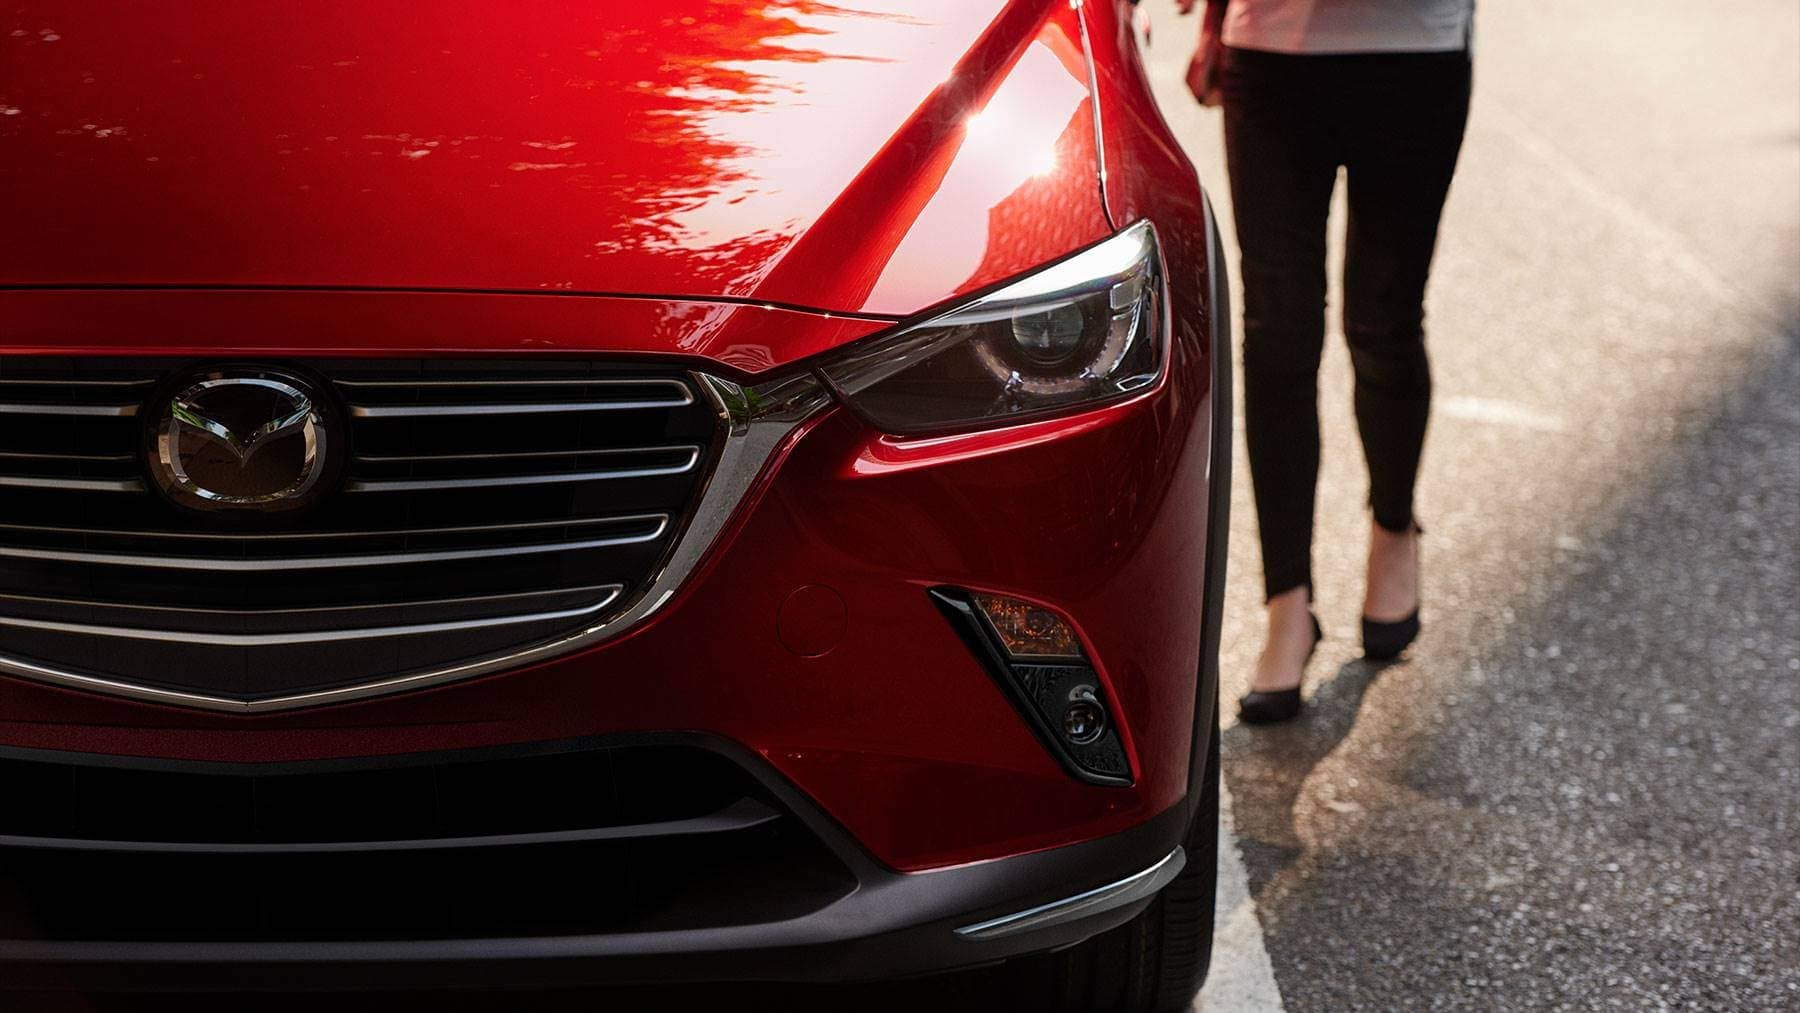 2019 Mazda CX-3 front exterior up close